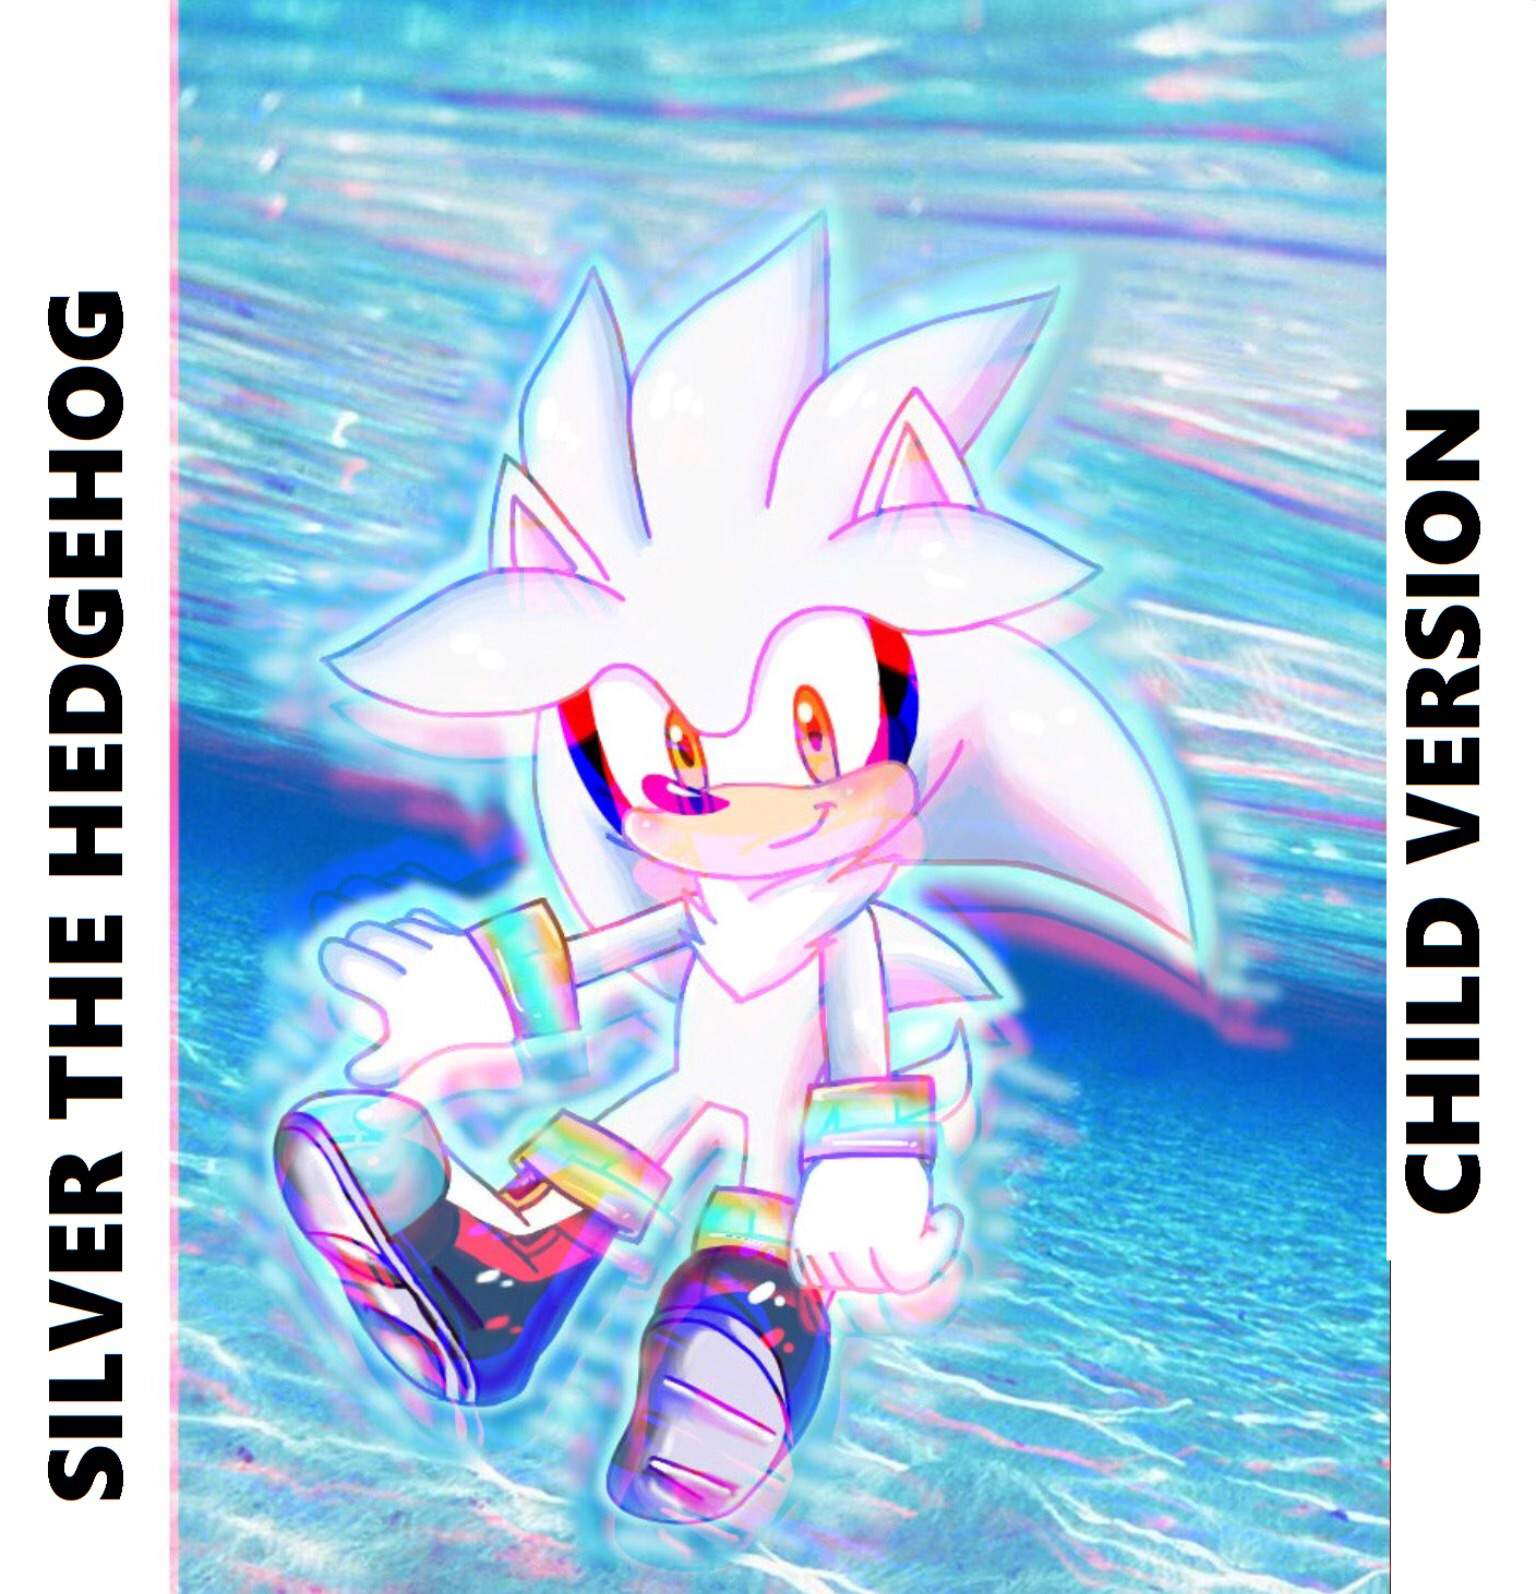 Young Silver The Hedgehog Floating 3d Version Sonic The Hedgehog Amino